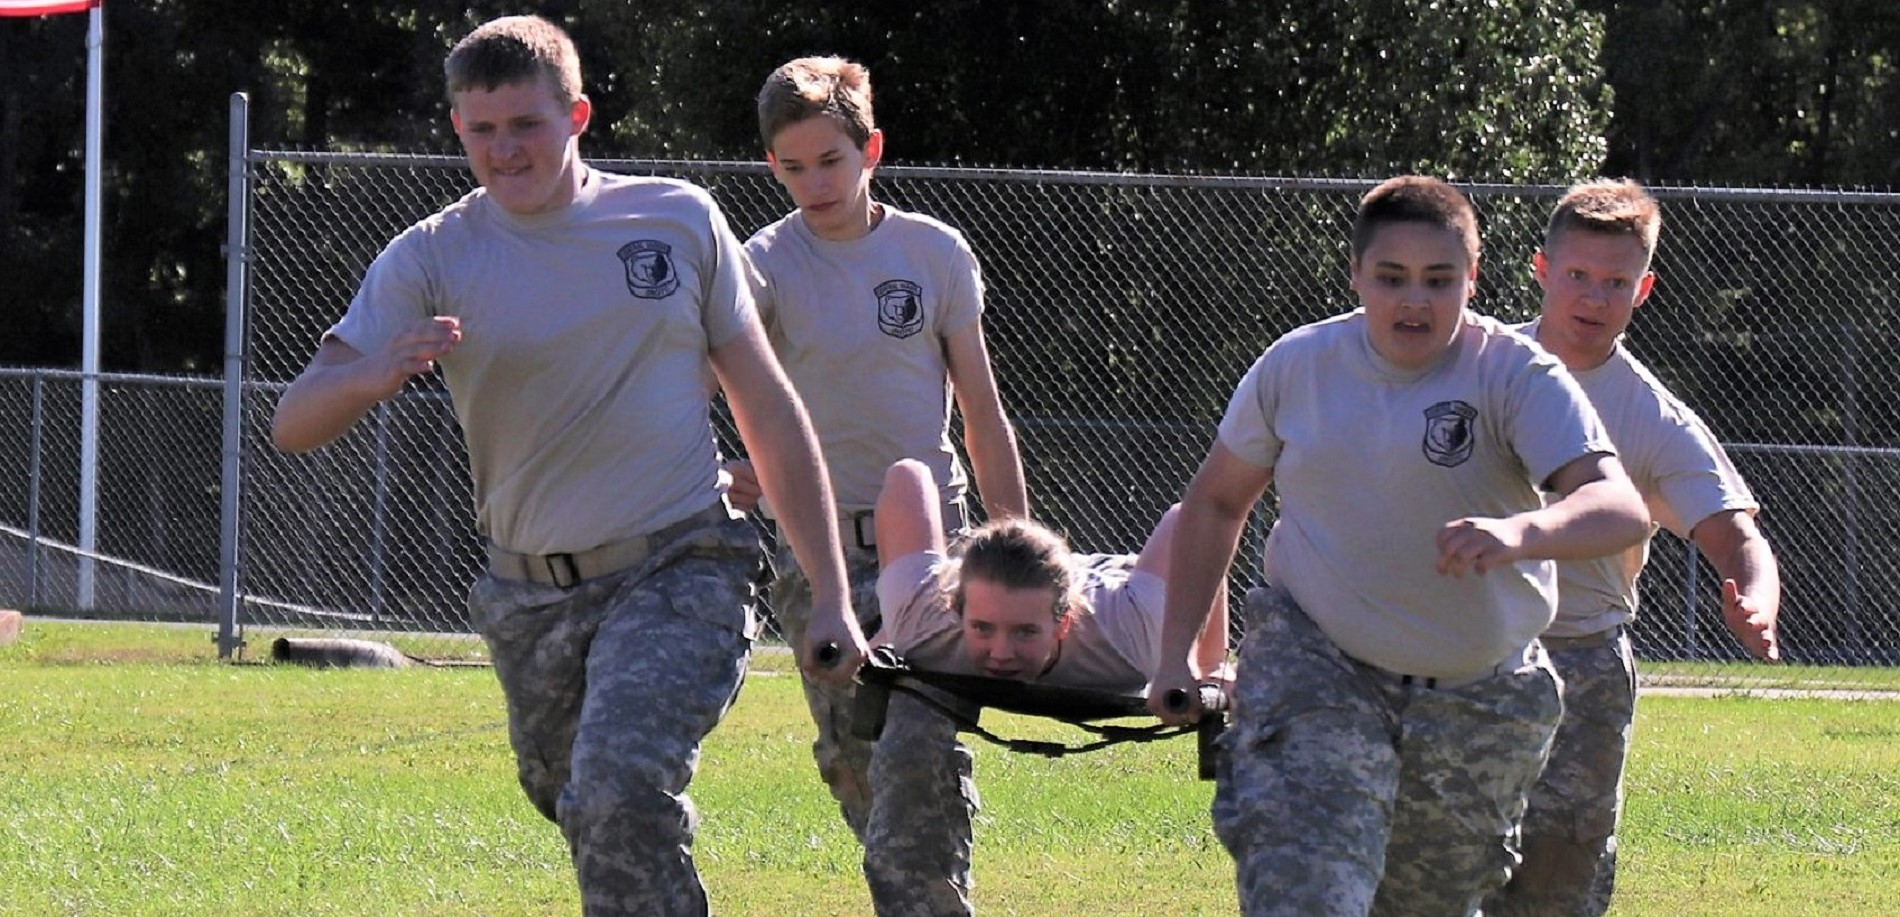 The Central Hardin High School Bruin JROTC Raider team recently competed in and won a meet in Ohio County against the best teams in the state.